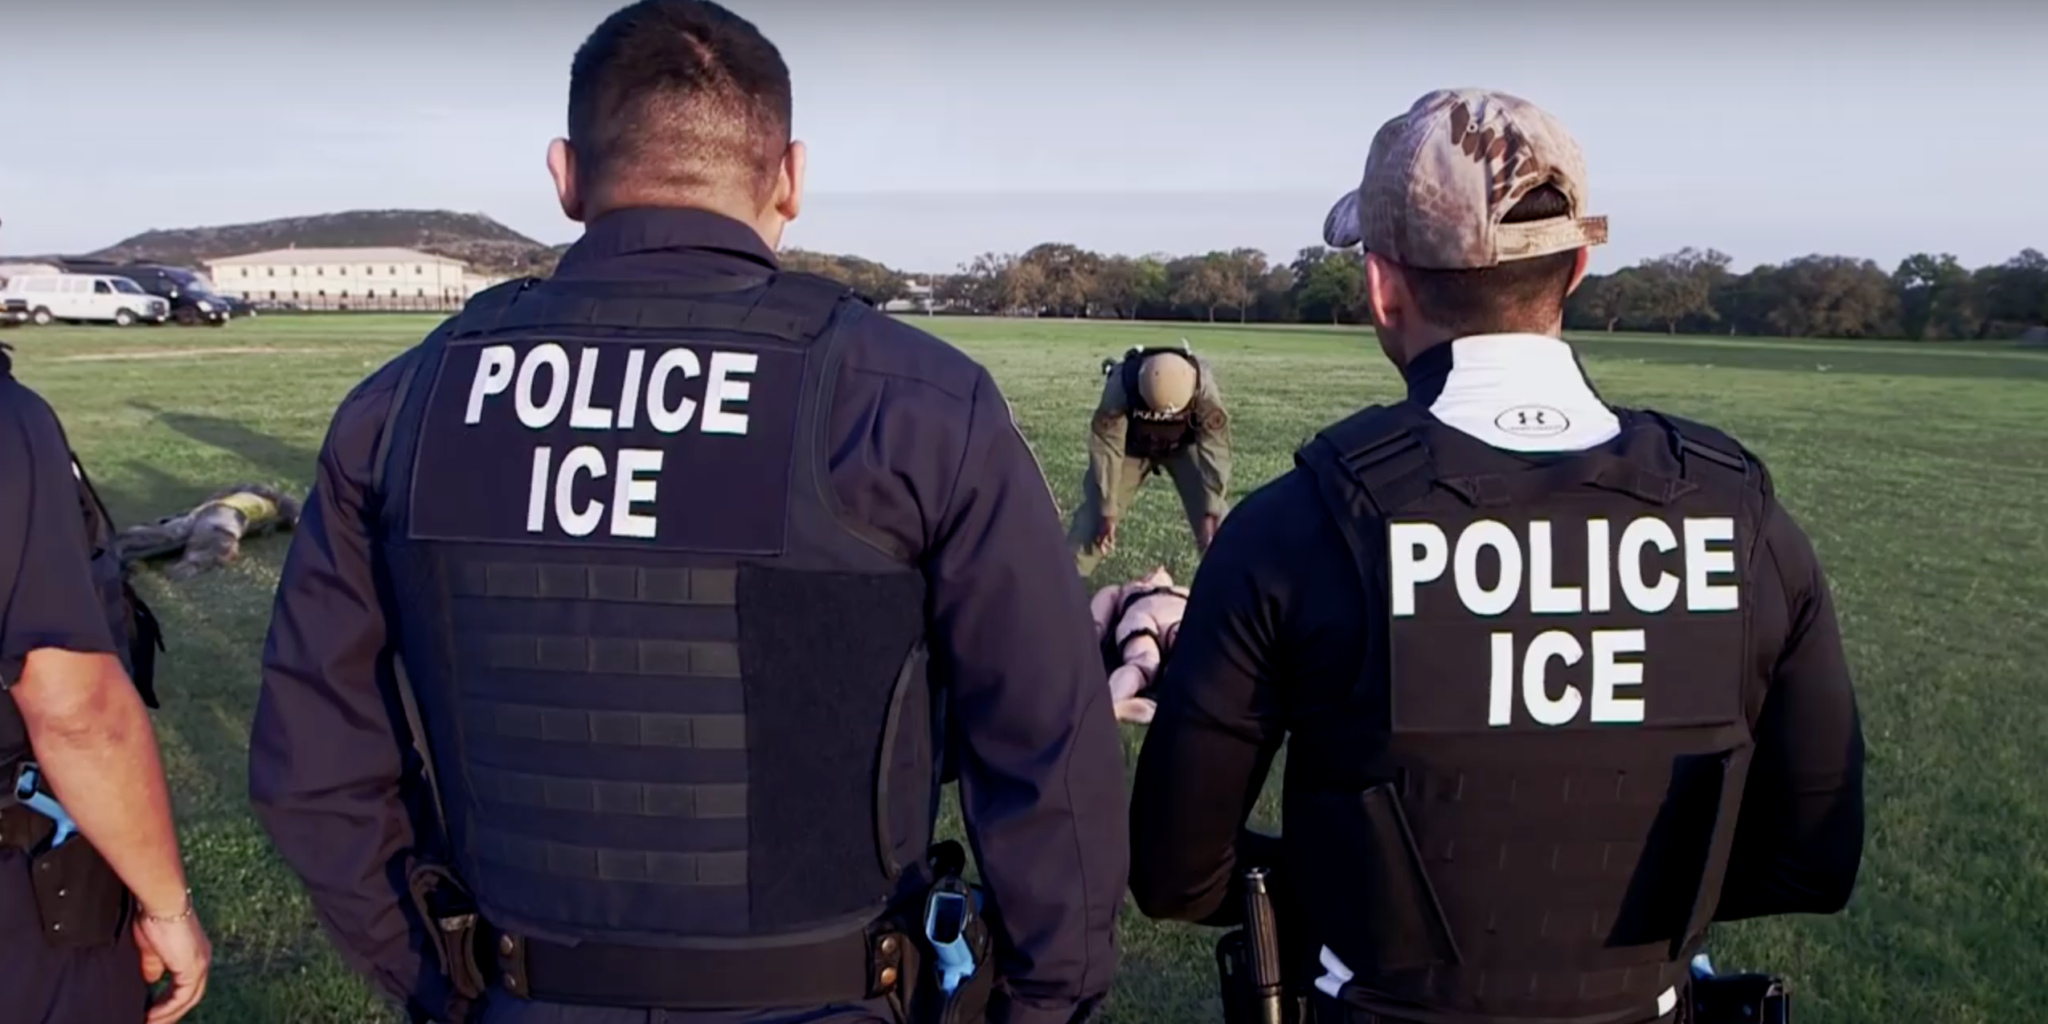 ICE Police